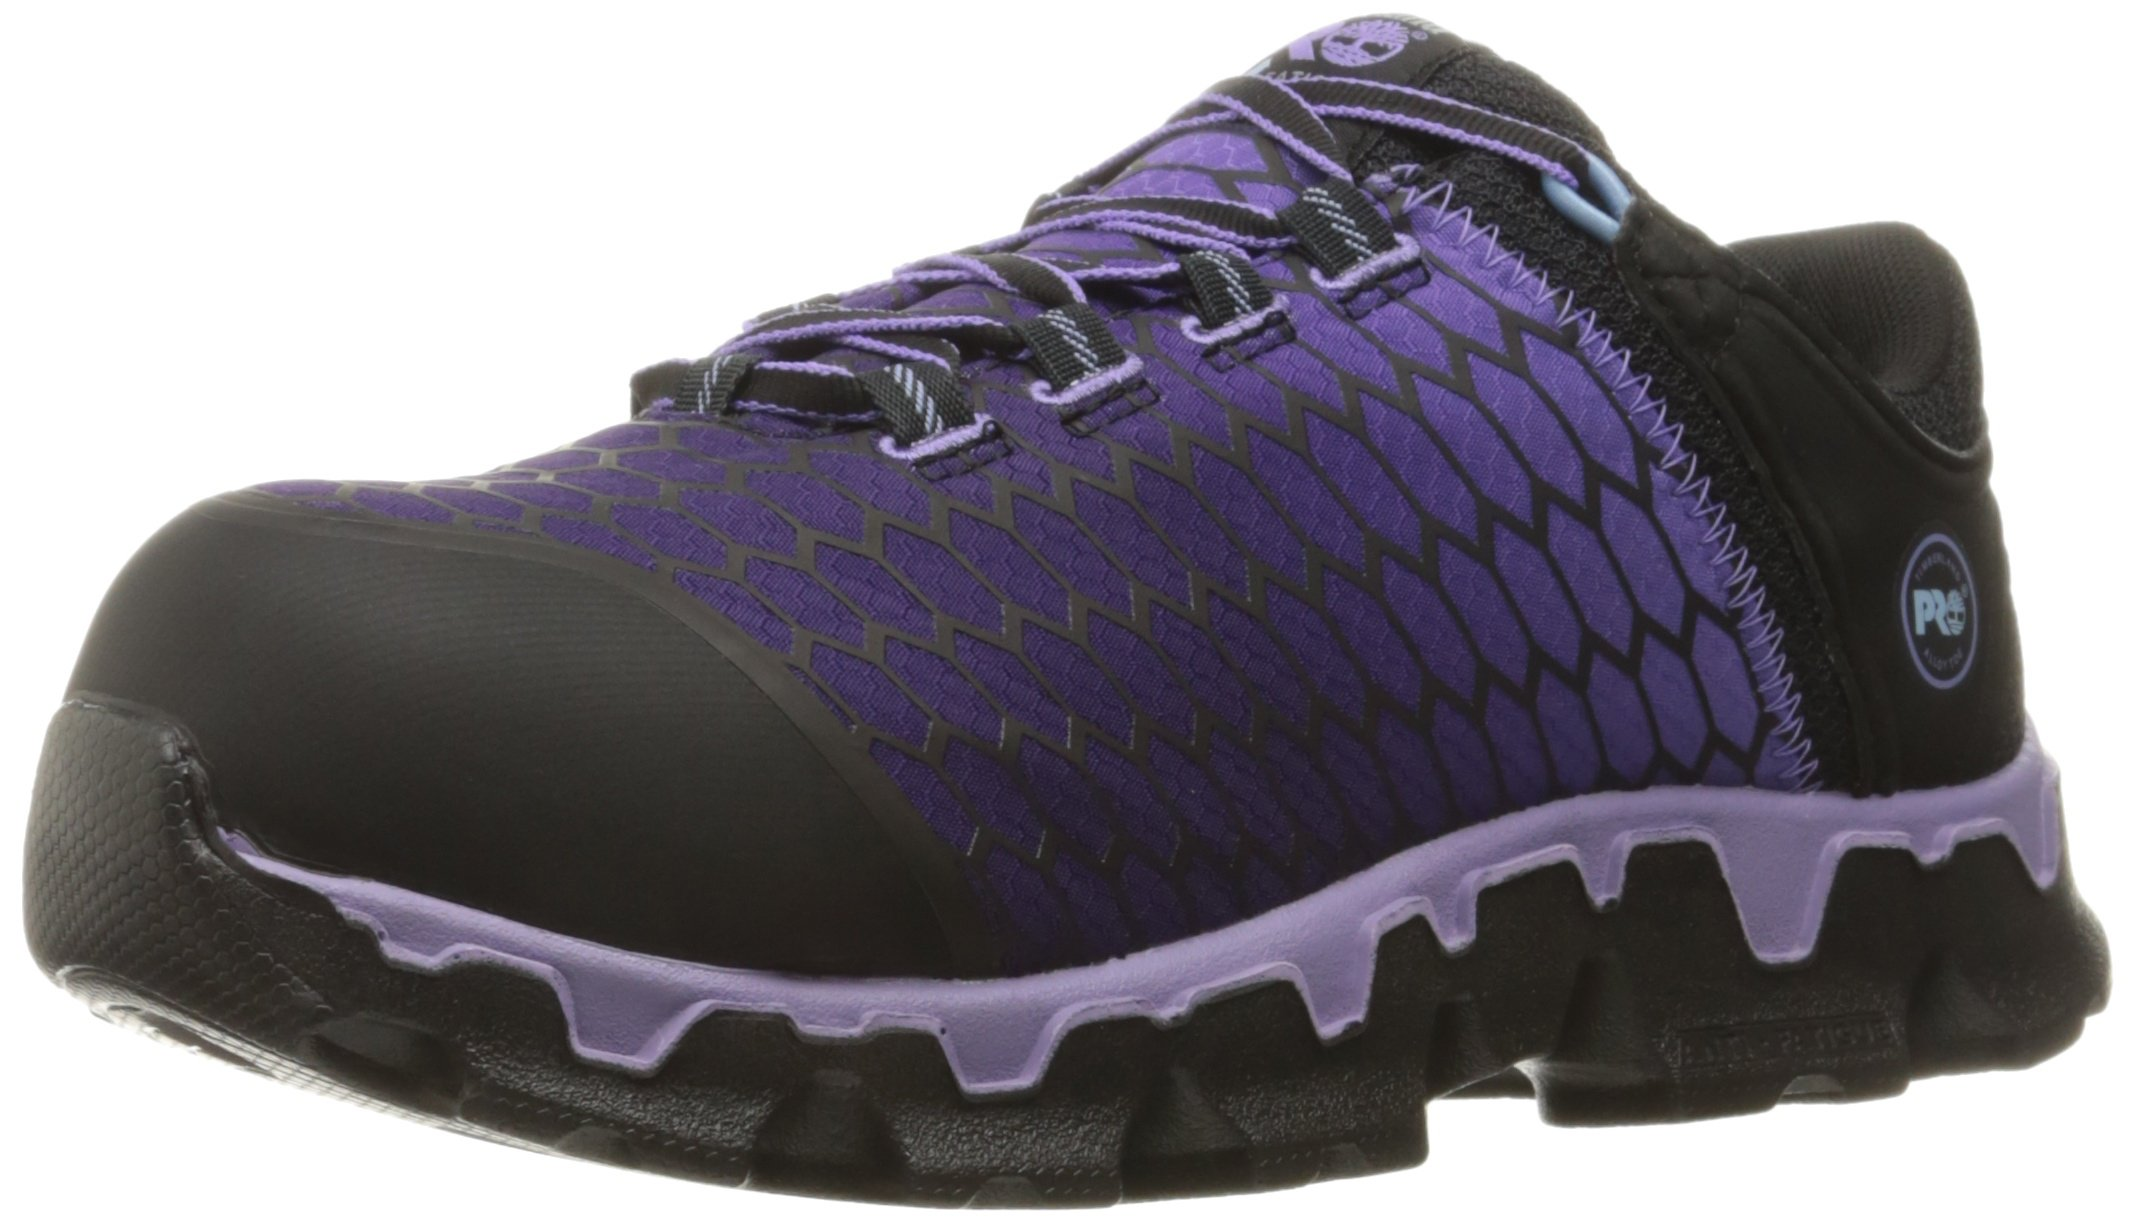 Timberland PRO Women's Powertrain Sport Alloy Toe SD+ Industrial & Construction Shoe, Black Synthetic/Lavender, 9 W US by Timberland PRO